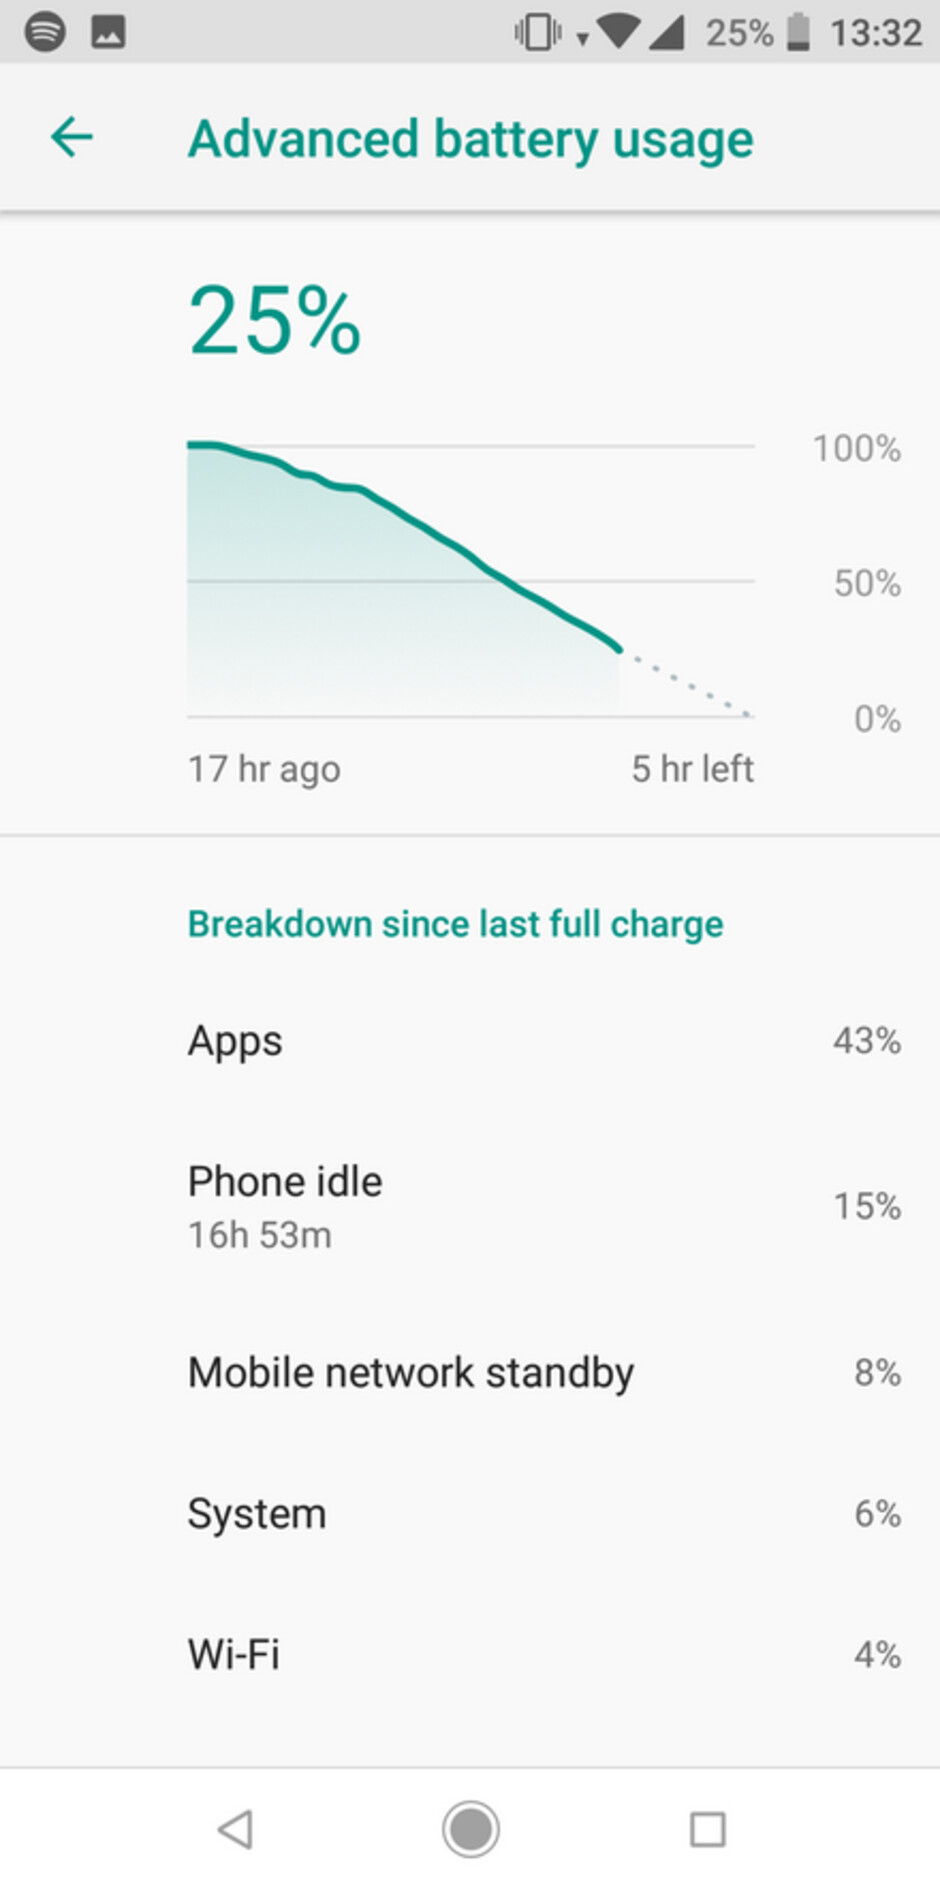 A problem with the fingerprint scanner on the Xiaomi Mi A2 has led to poor battery life for the unit - Xiaomi Mi A1 allegedly explodes while a fingerprint bug kills the battery on the Xiaomi Mi A2